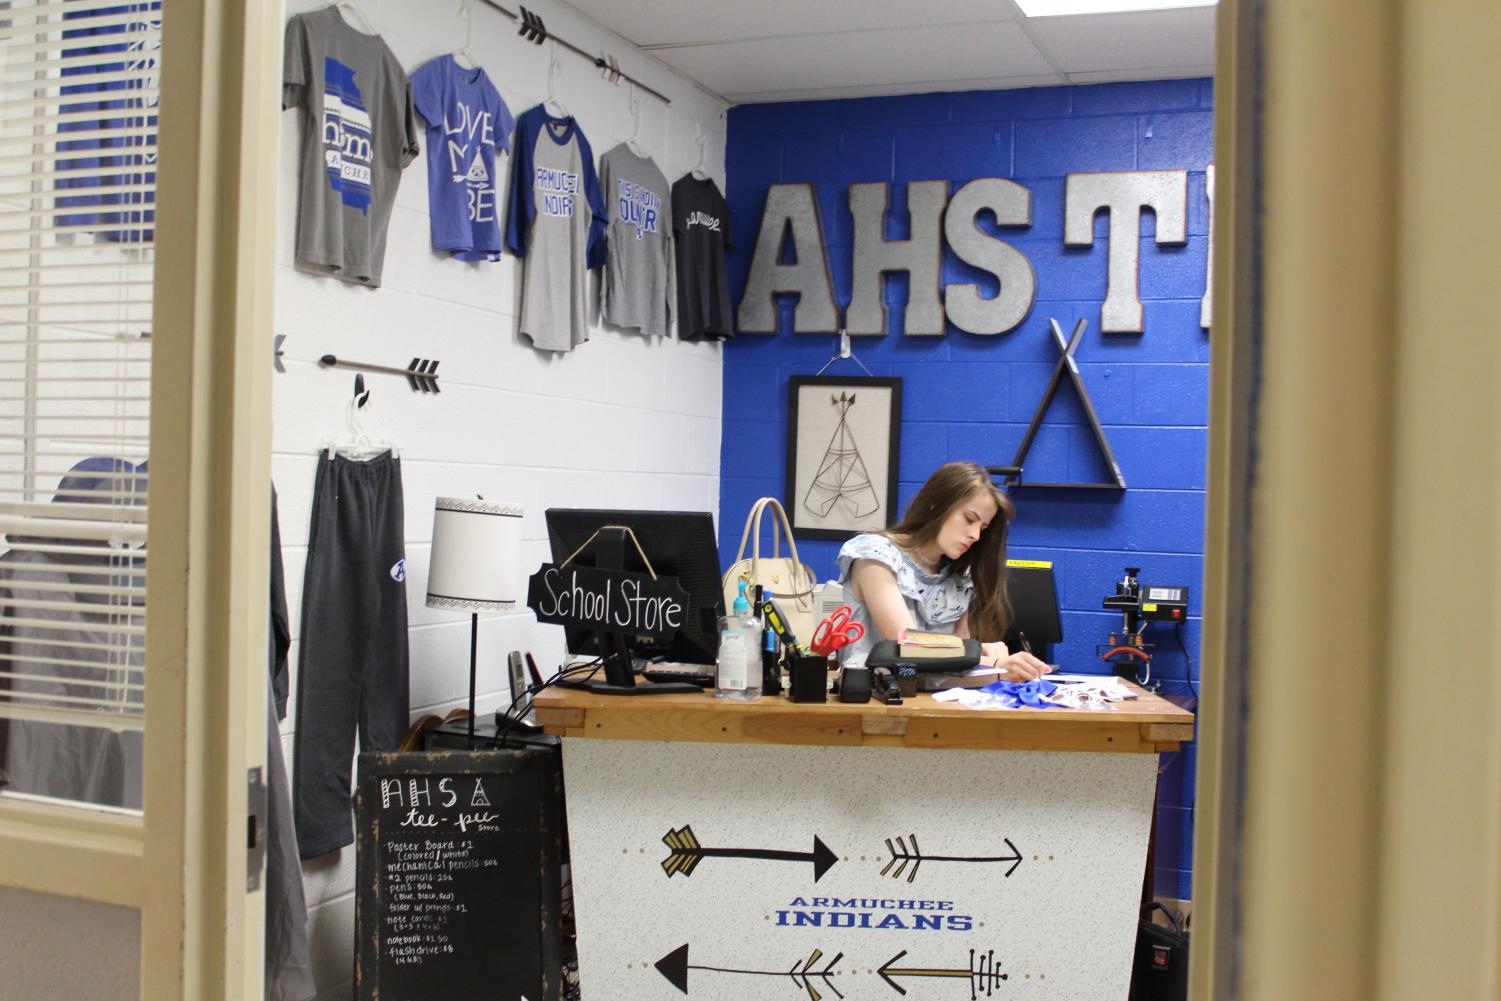 This photo has captured a student intern working in the TeePee store. It displays the merchandise we have to pick from and the prices that they cost. With the blue paint on the walls and the school colors all over the room, the TeePee store radiates school spirit.